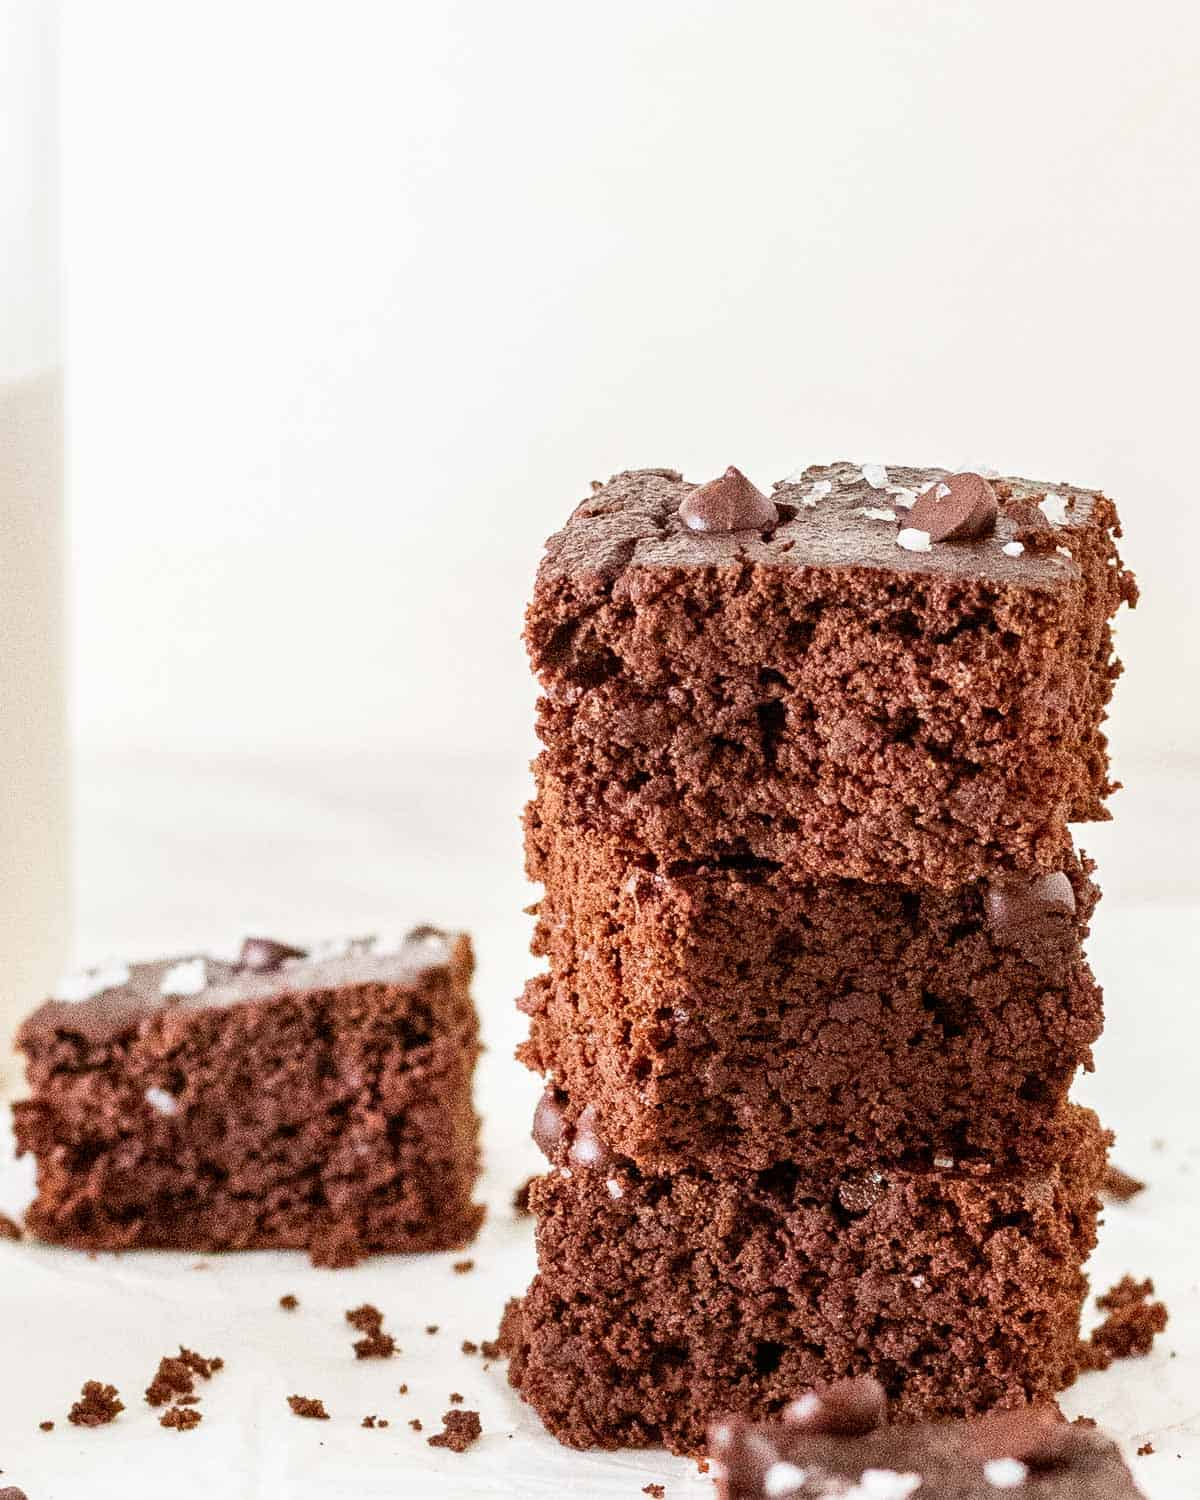 A stack of 3 brownies with a slice of brownie in the background.